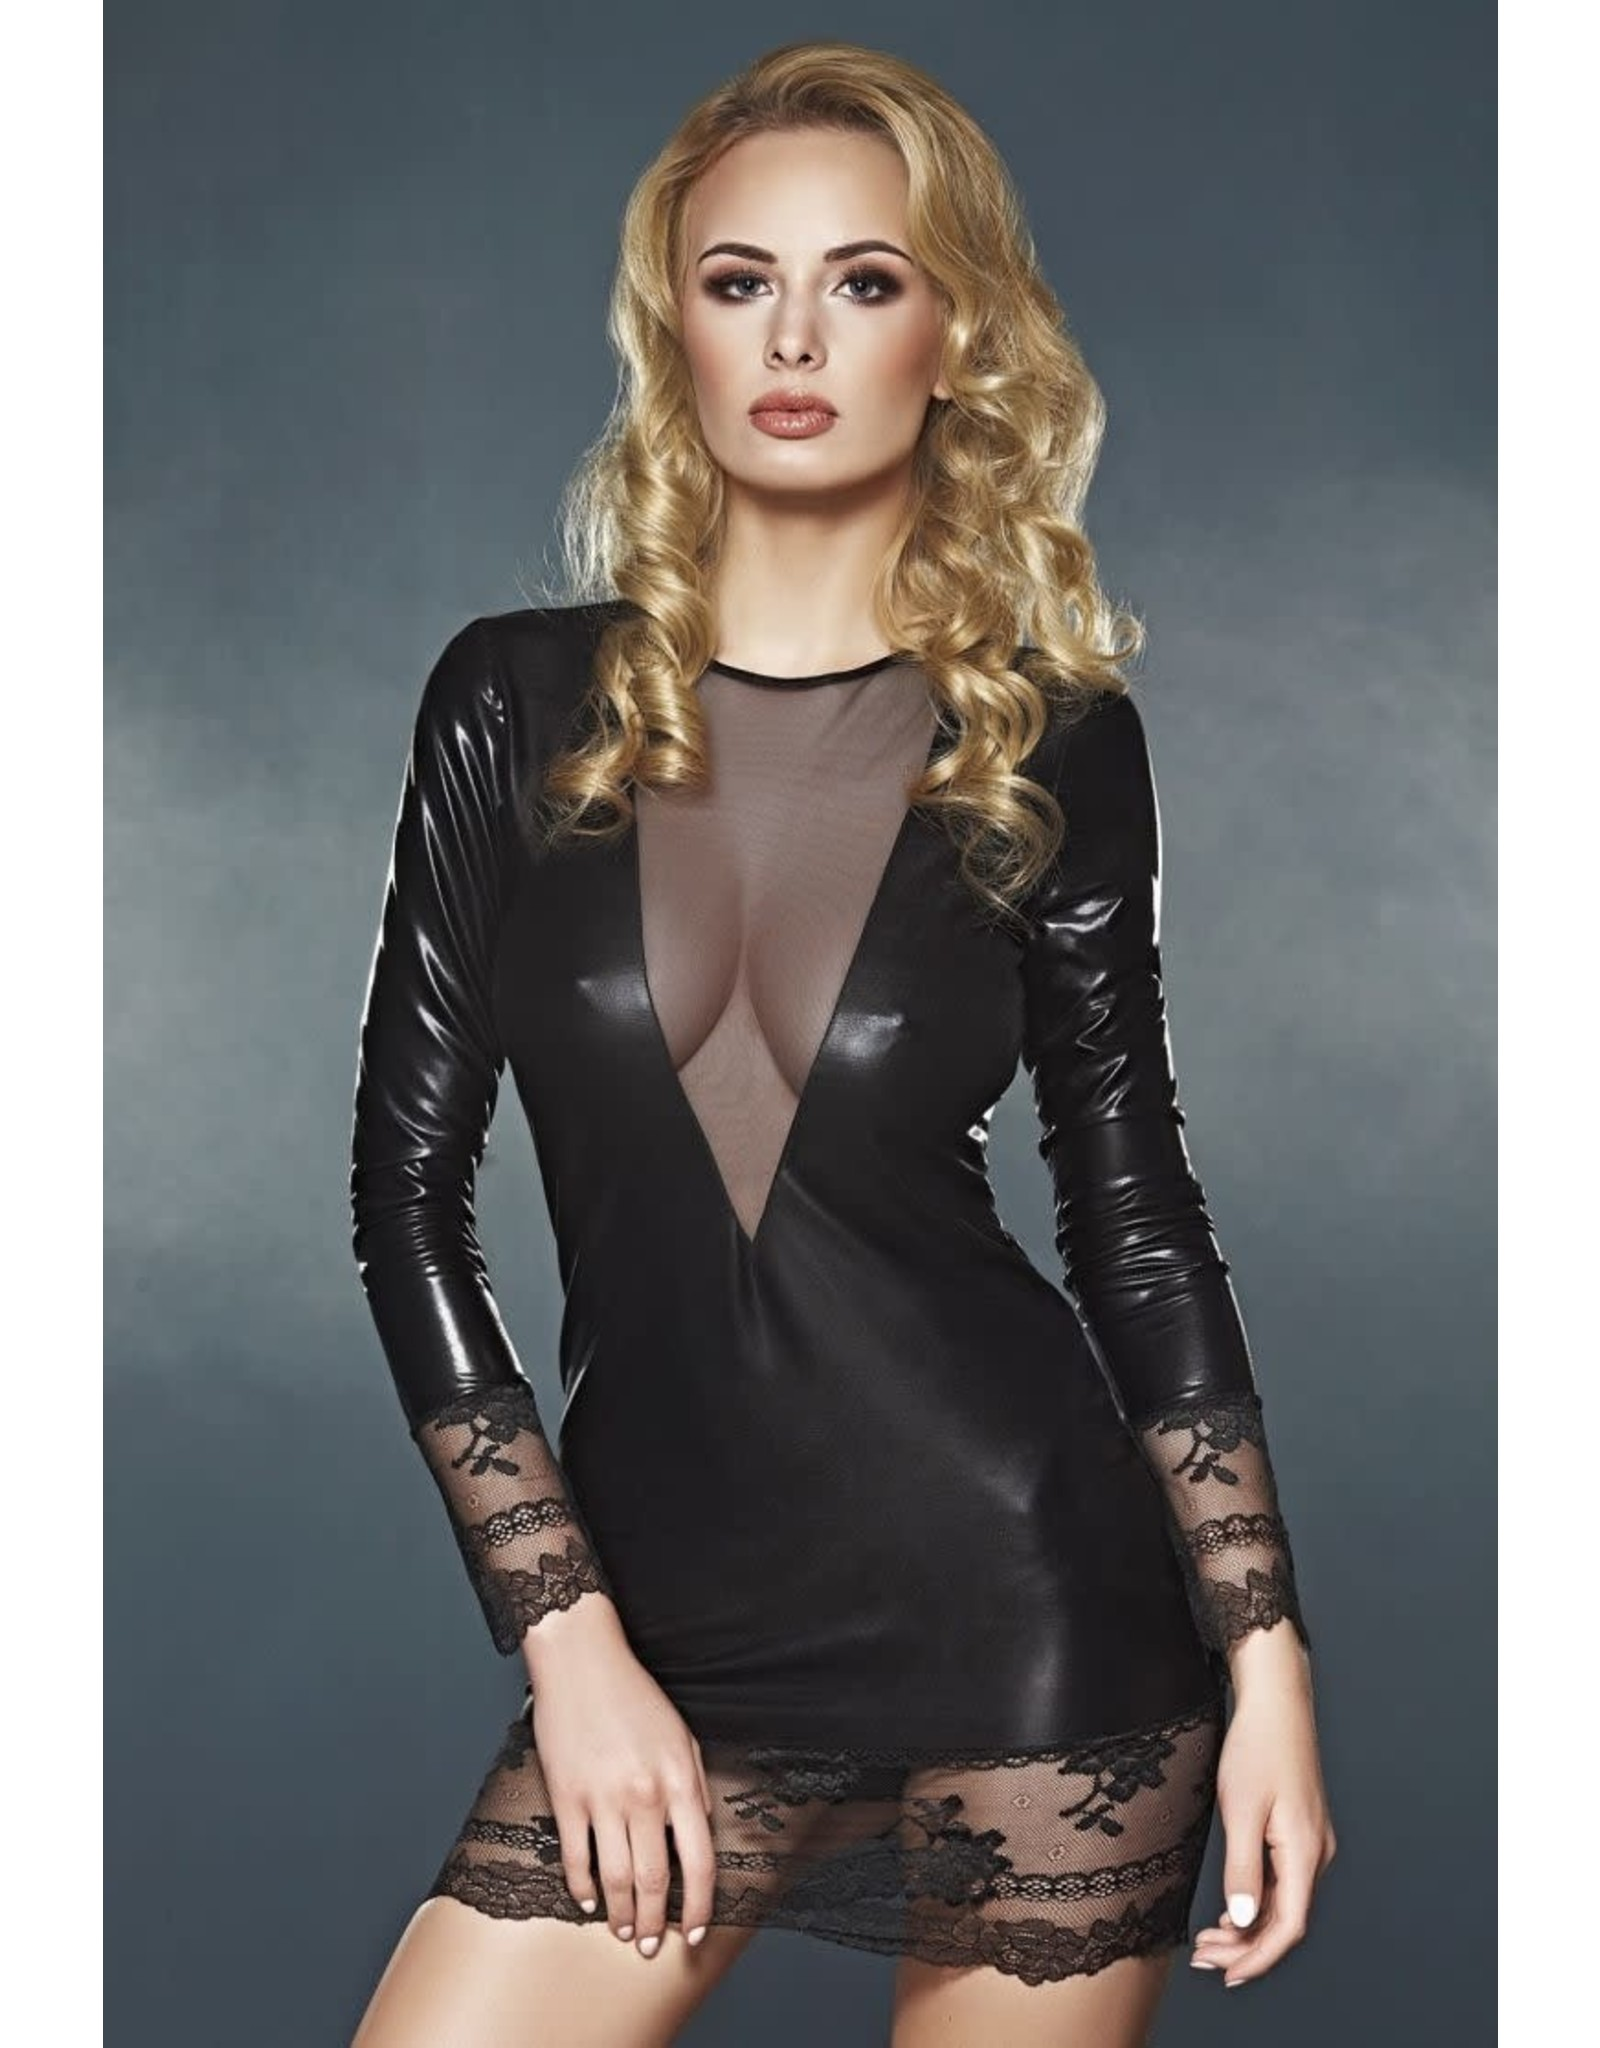 7 HEAVEN - ELEGANT LONG SLEEVE WET LOOK DRESS WITH LACE AND TULLE DETAILS - X-LARGE